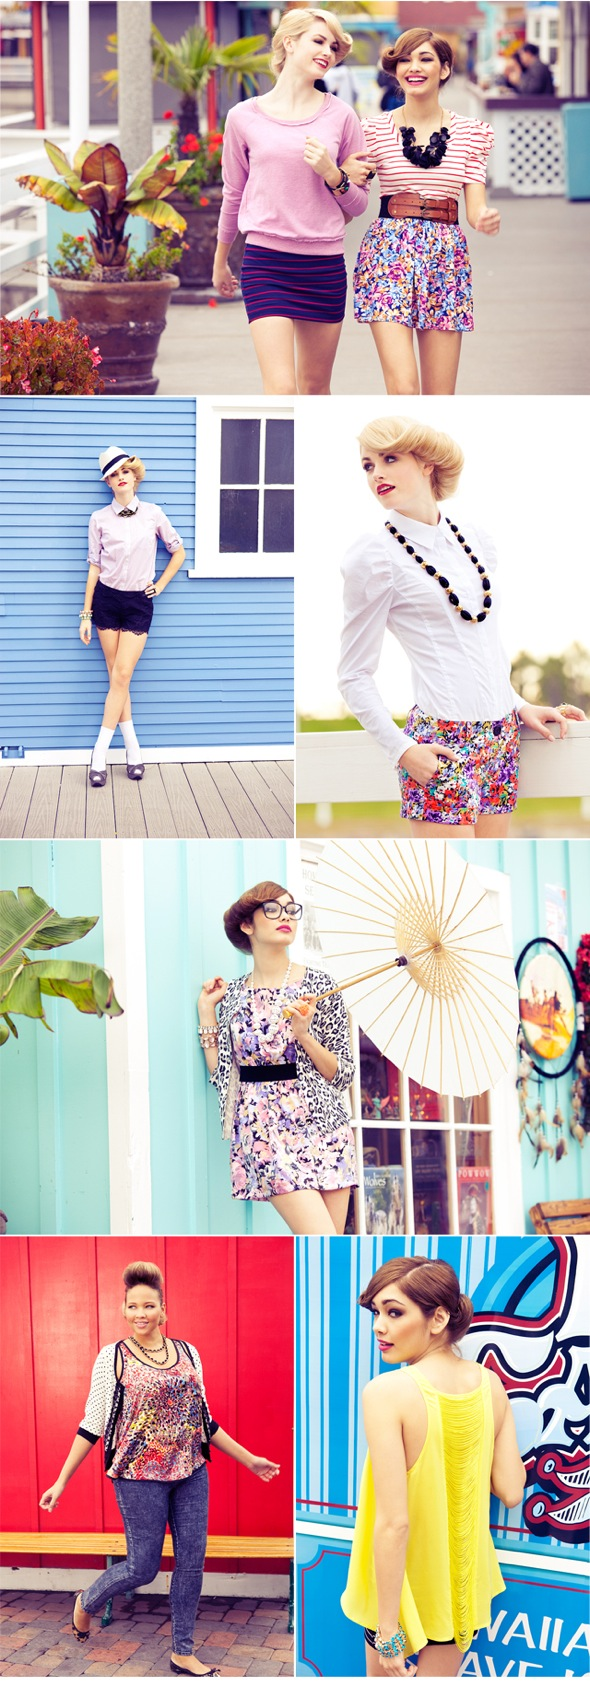 TheSkinny_SpringLookbook2(1)